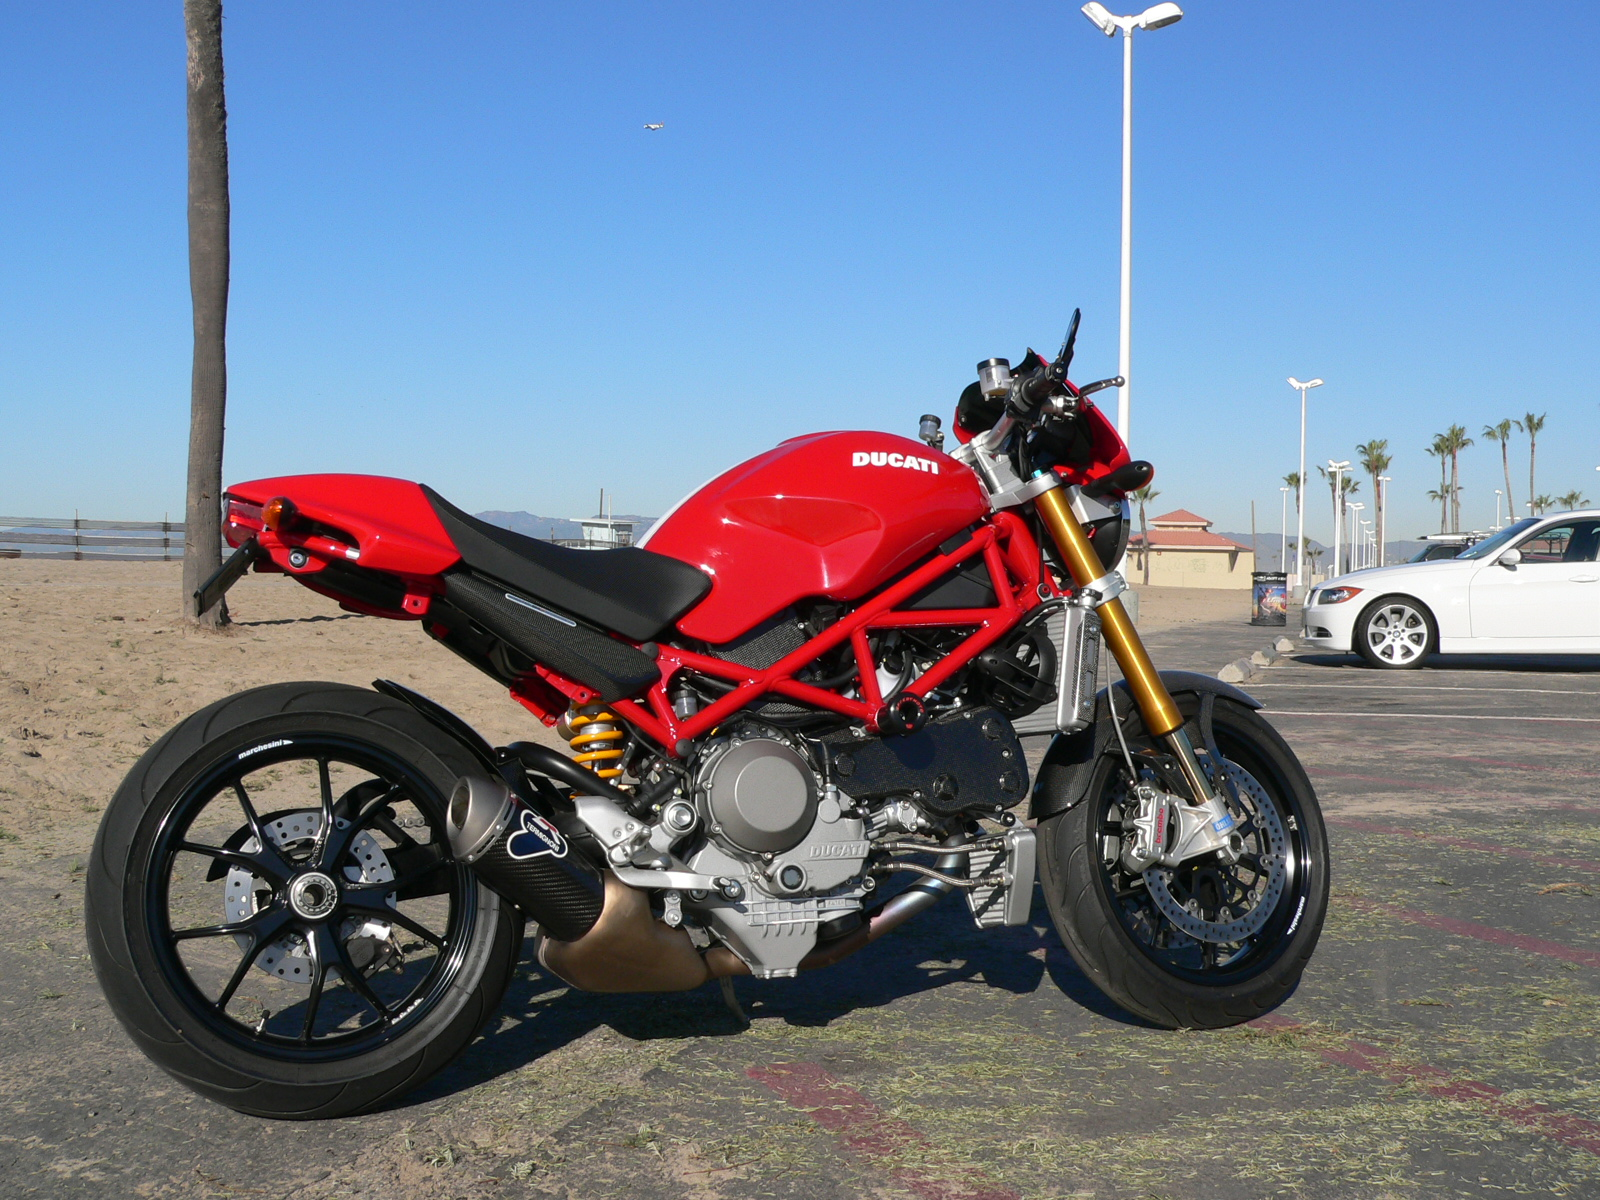 Ducati Monster S4Rs Testastretta 2007 #1